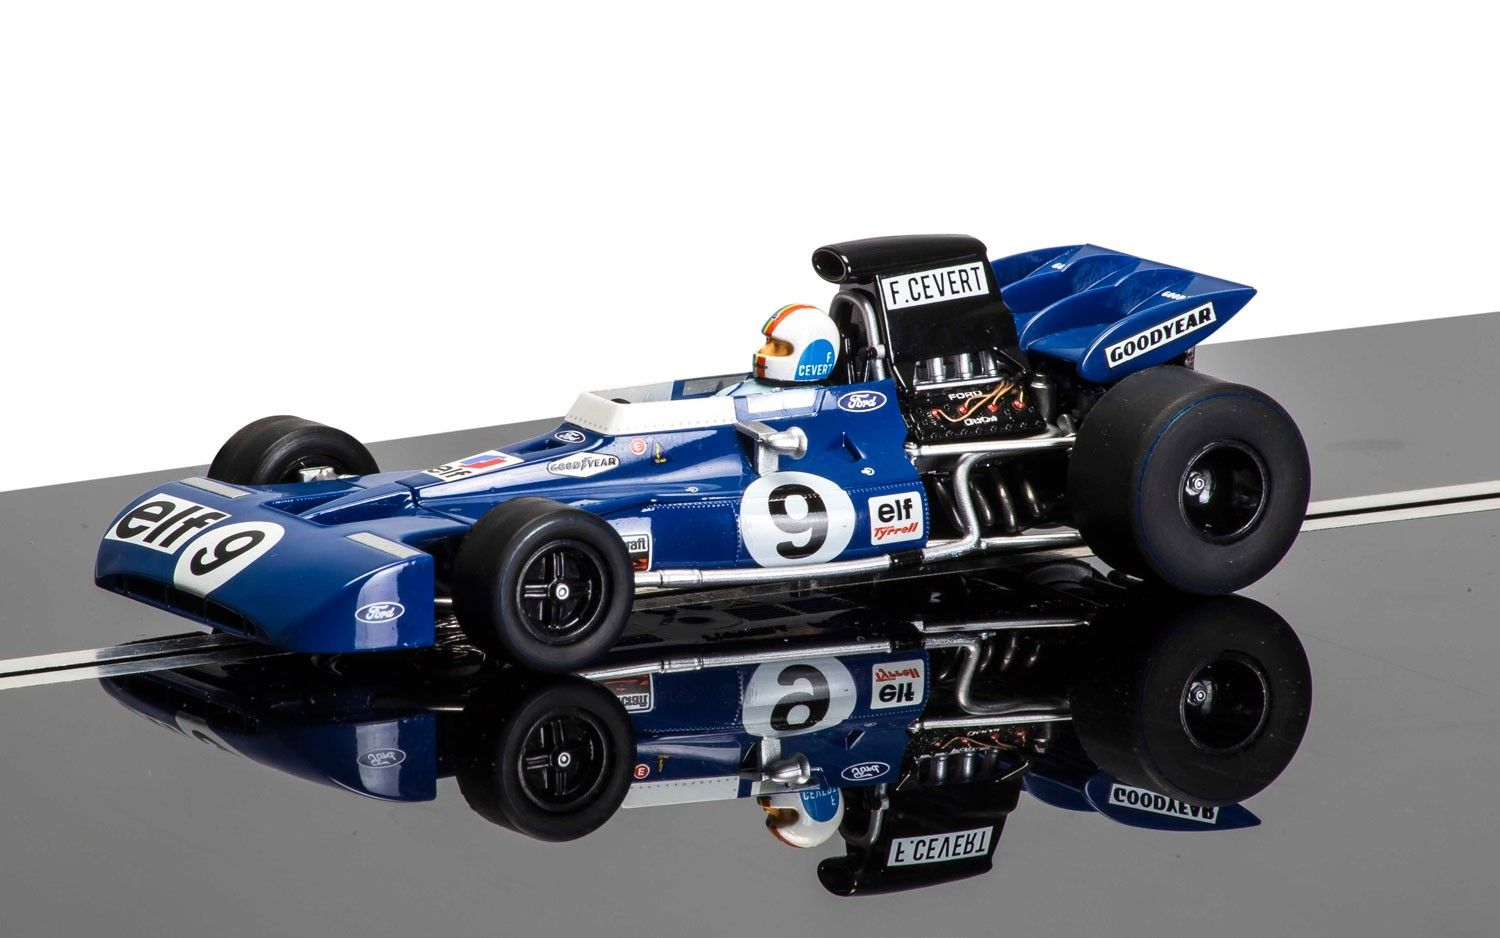 Scalextric Uk 2334 Superslot Bmw Williams F1 Fw23 # 5 R Schumacher Cooperative Qq St